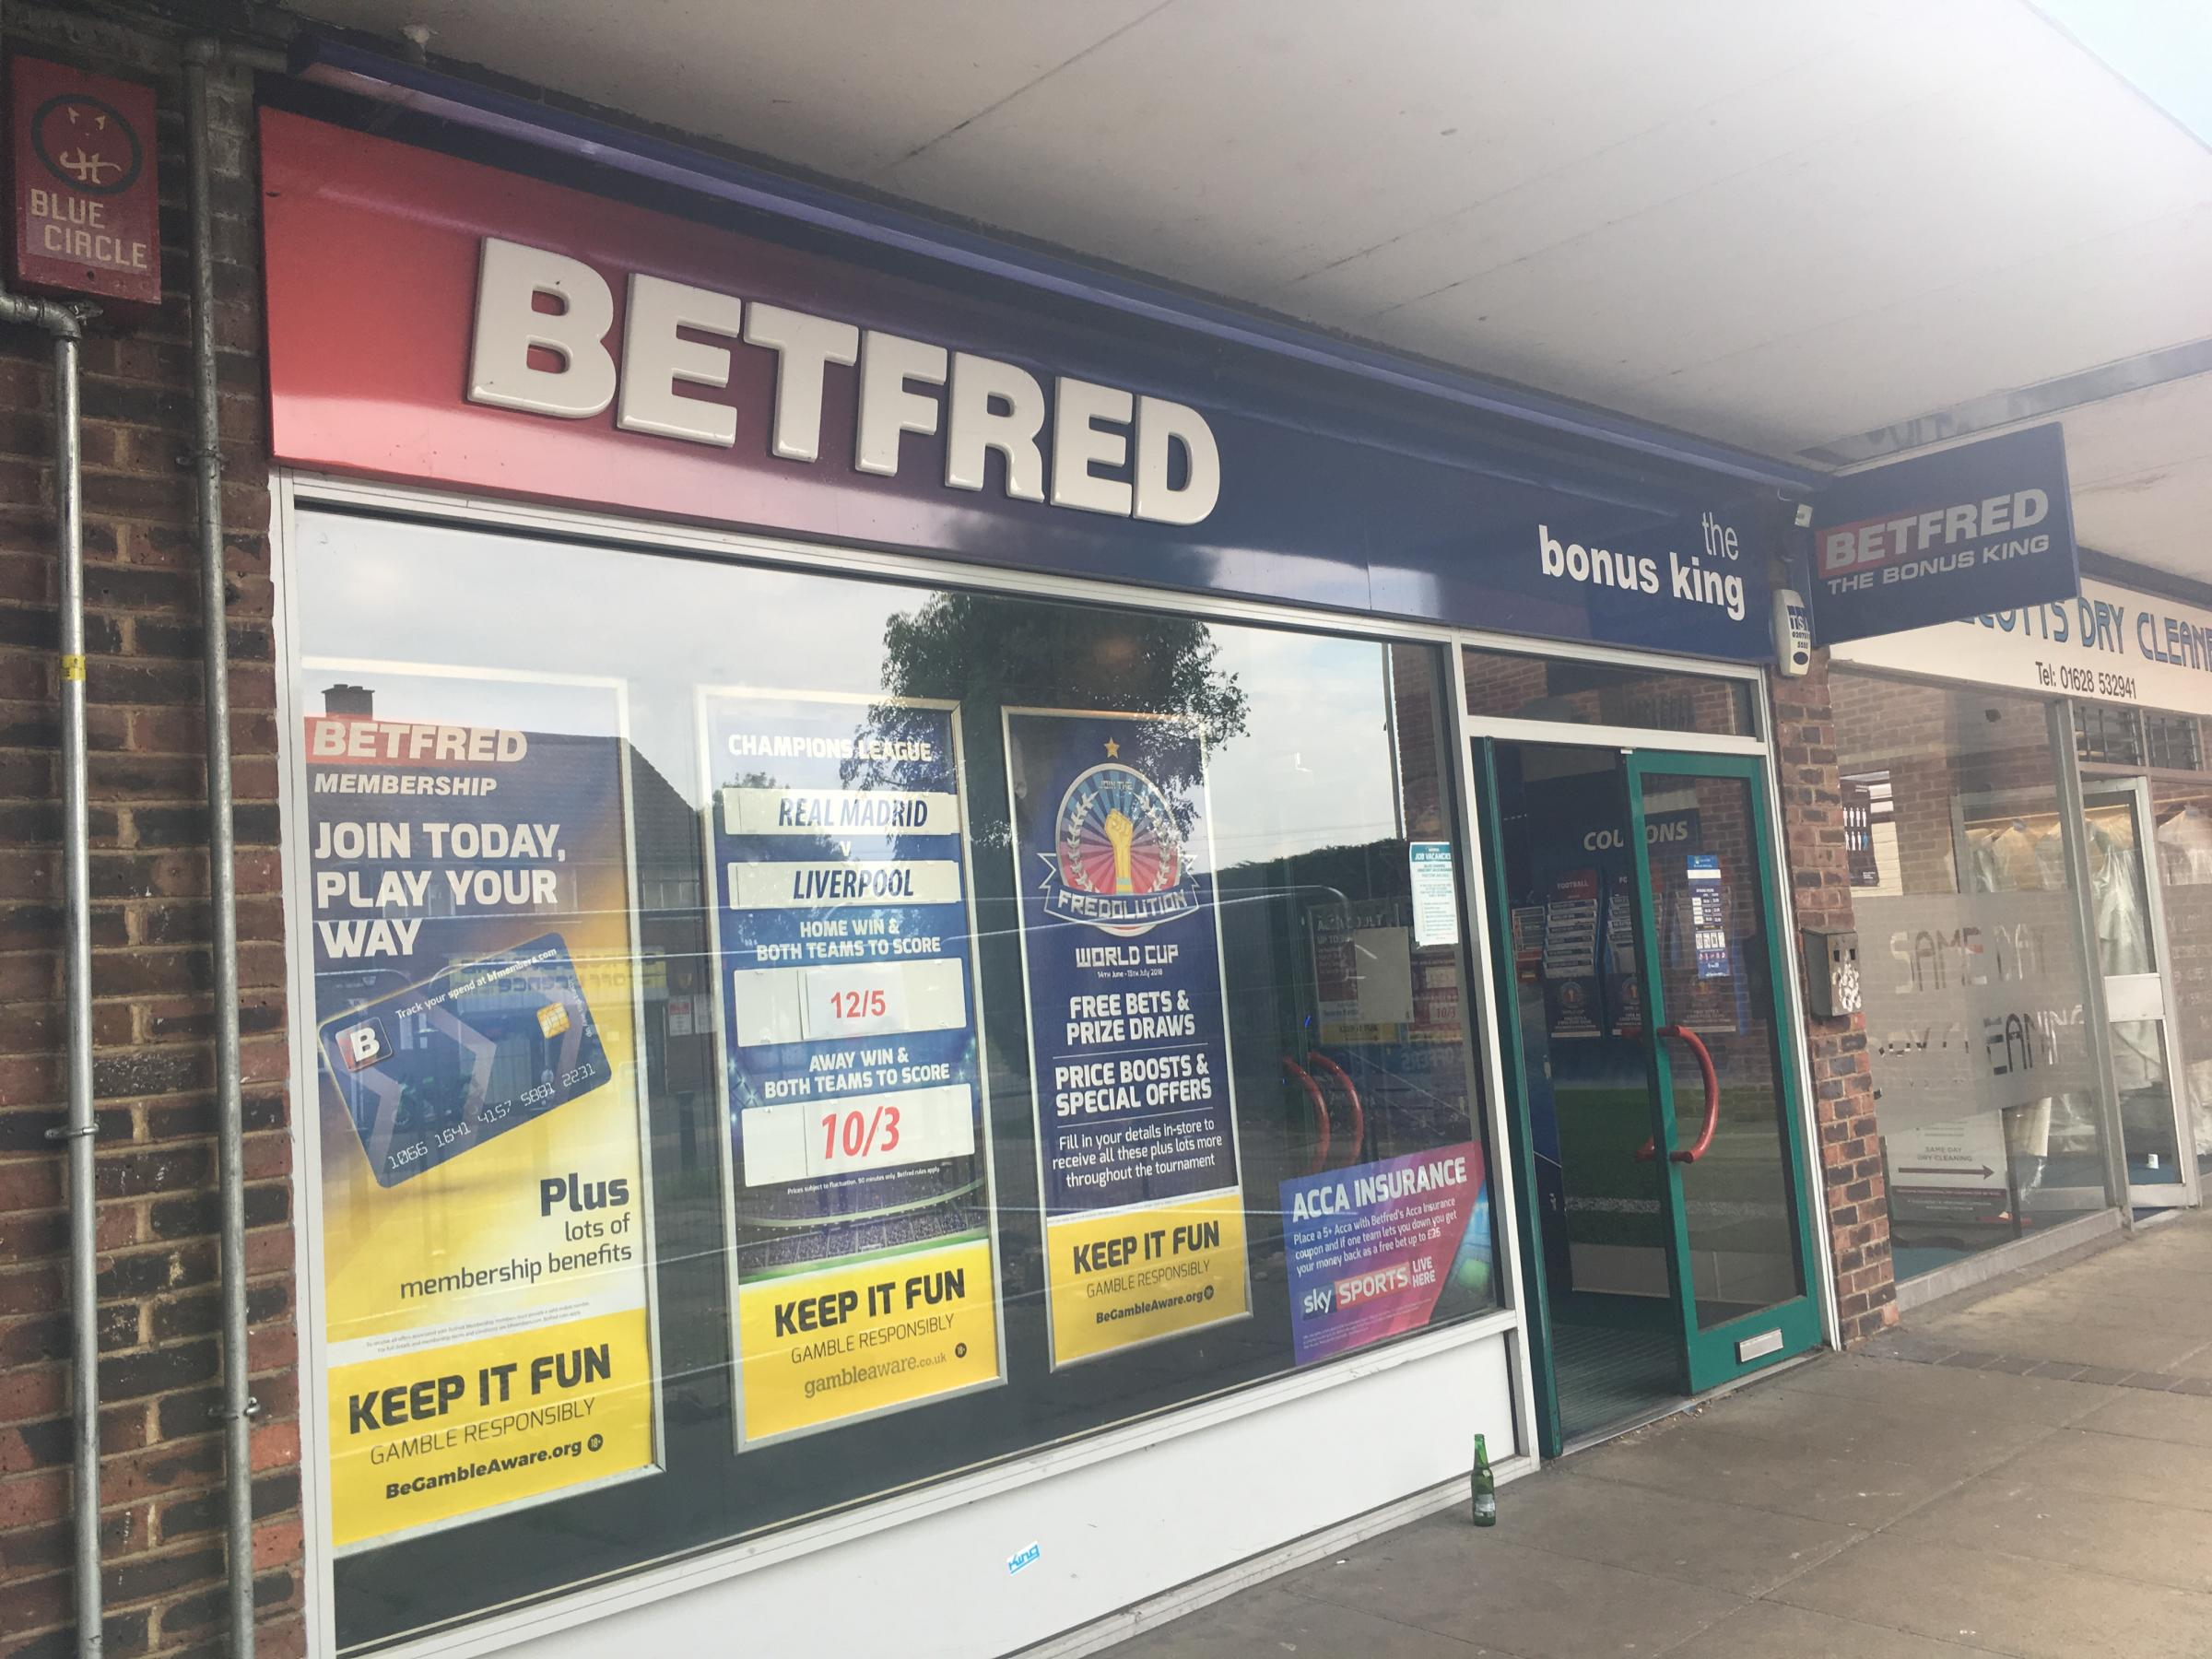 Knife-wielding robber jumps over betting shop counter and steals cash